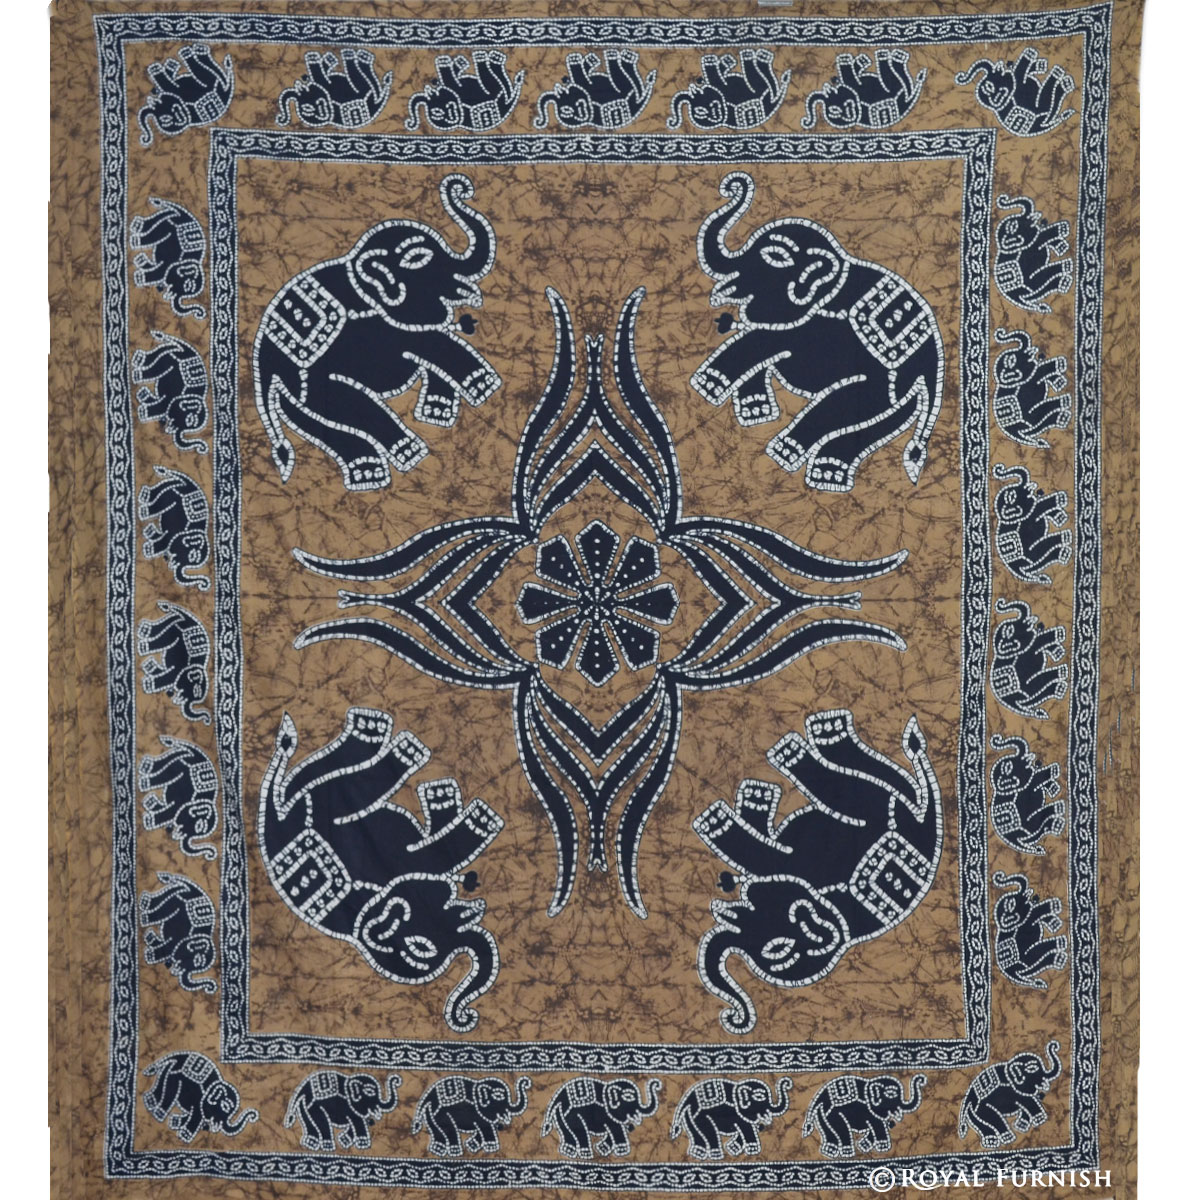 Indian elephant handloom hippie tapestry wall hanging for for Wall hangings